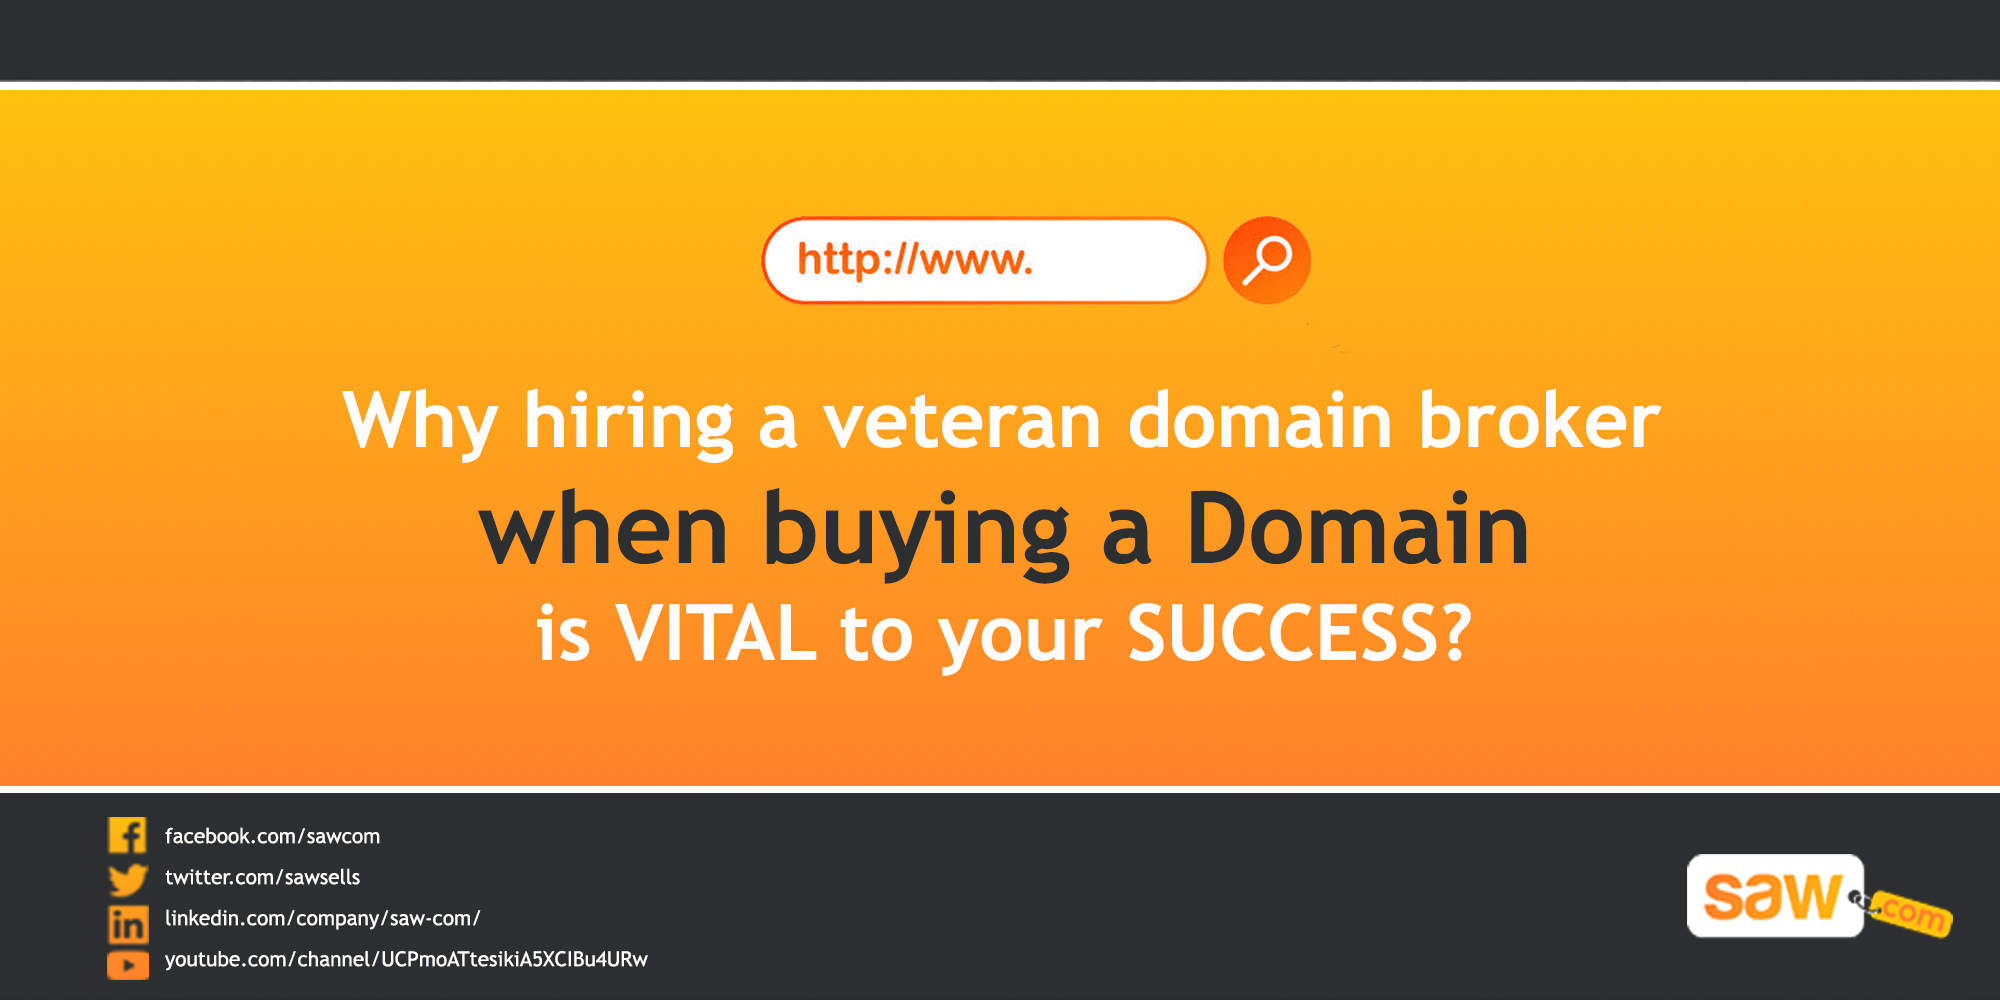 Why hiring a veteran domain broker when buying a domain is vital to your success.